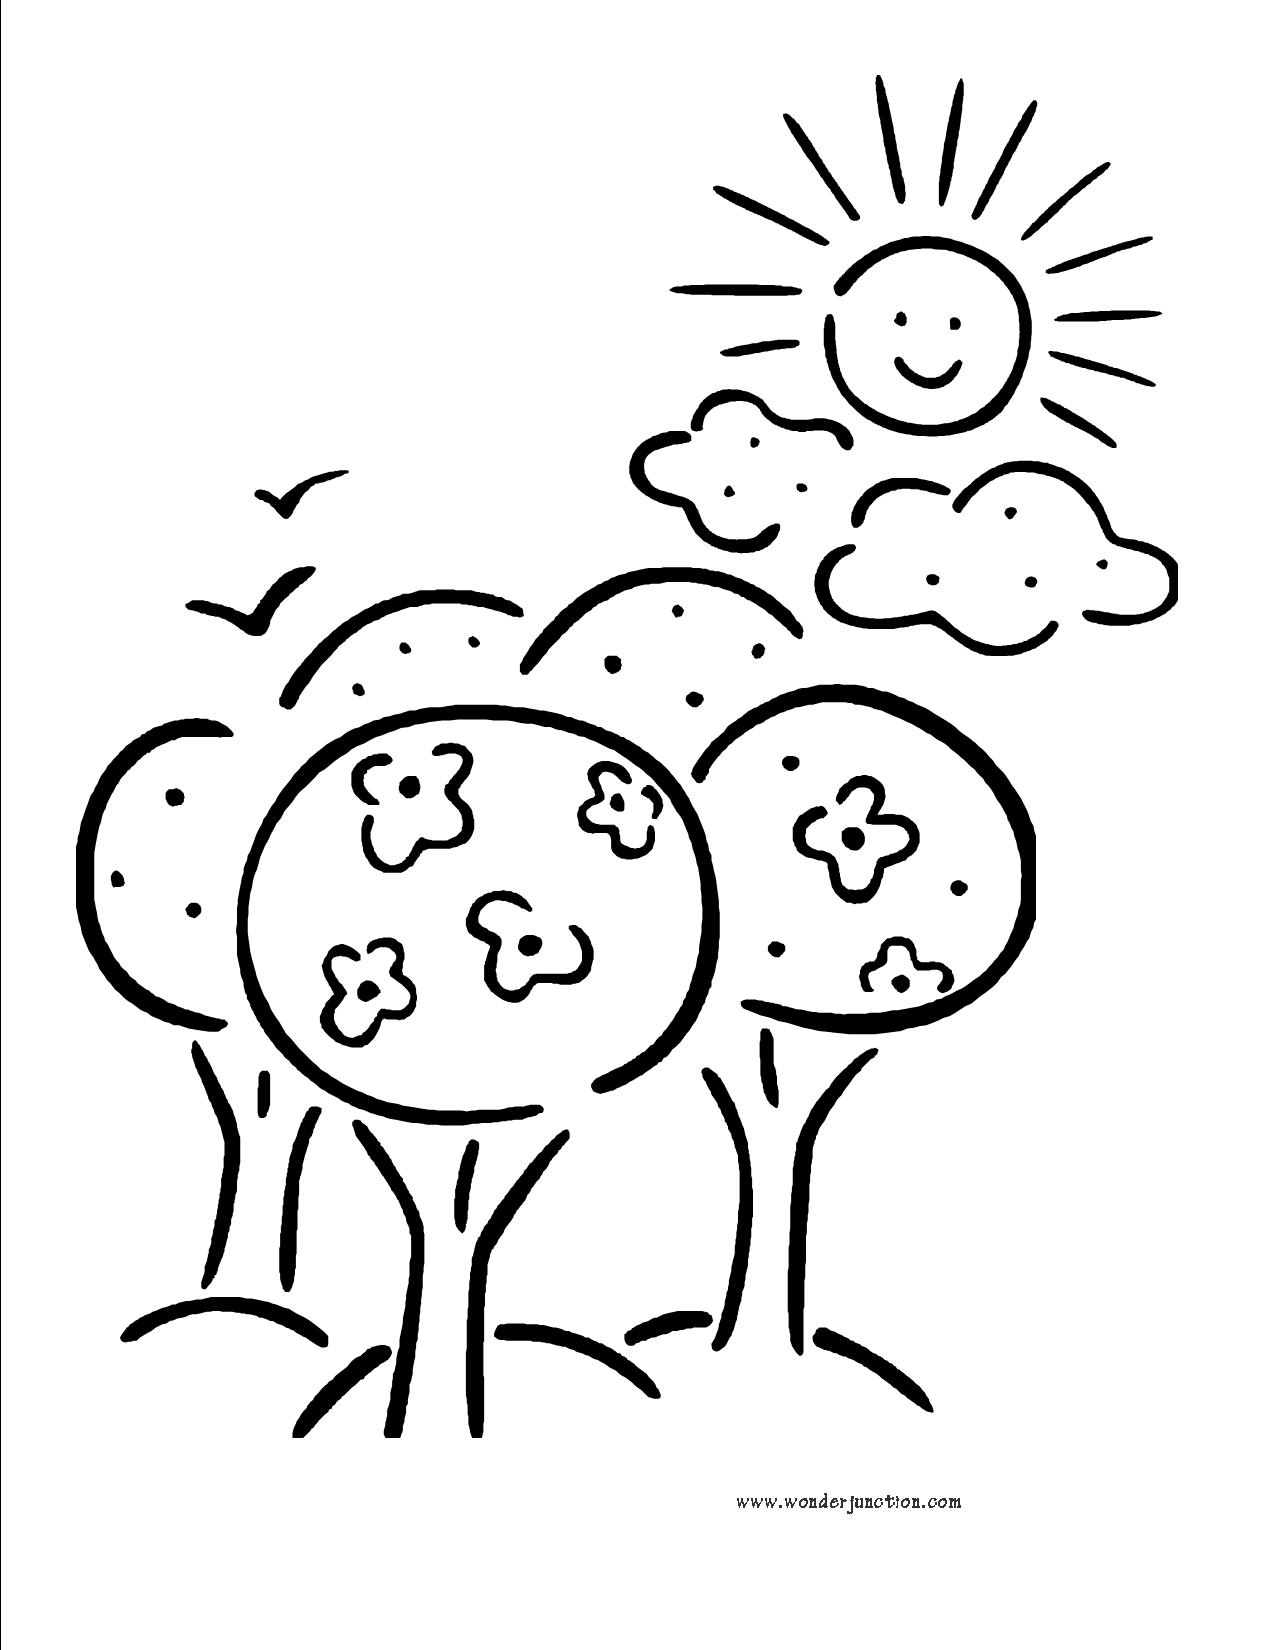 Free Sunny Day Pictures, Download Free Clip Art, Free Clip